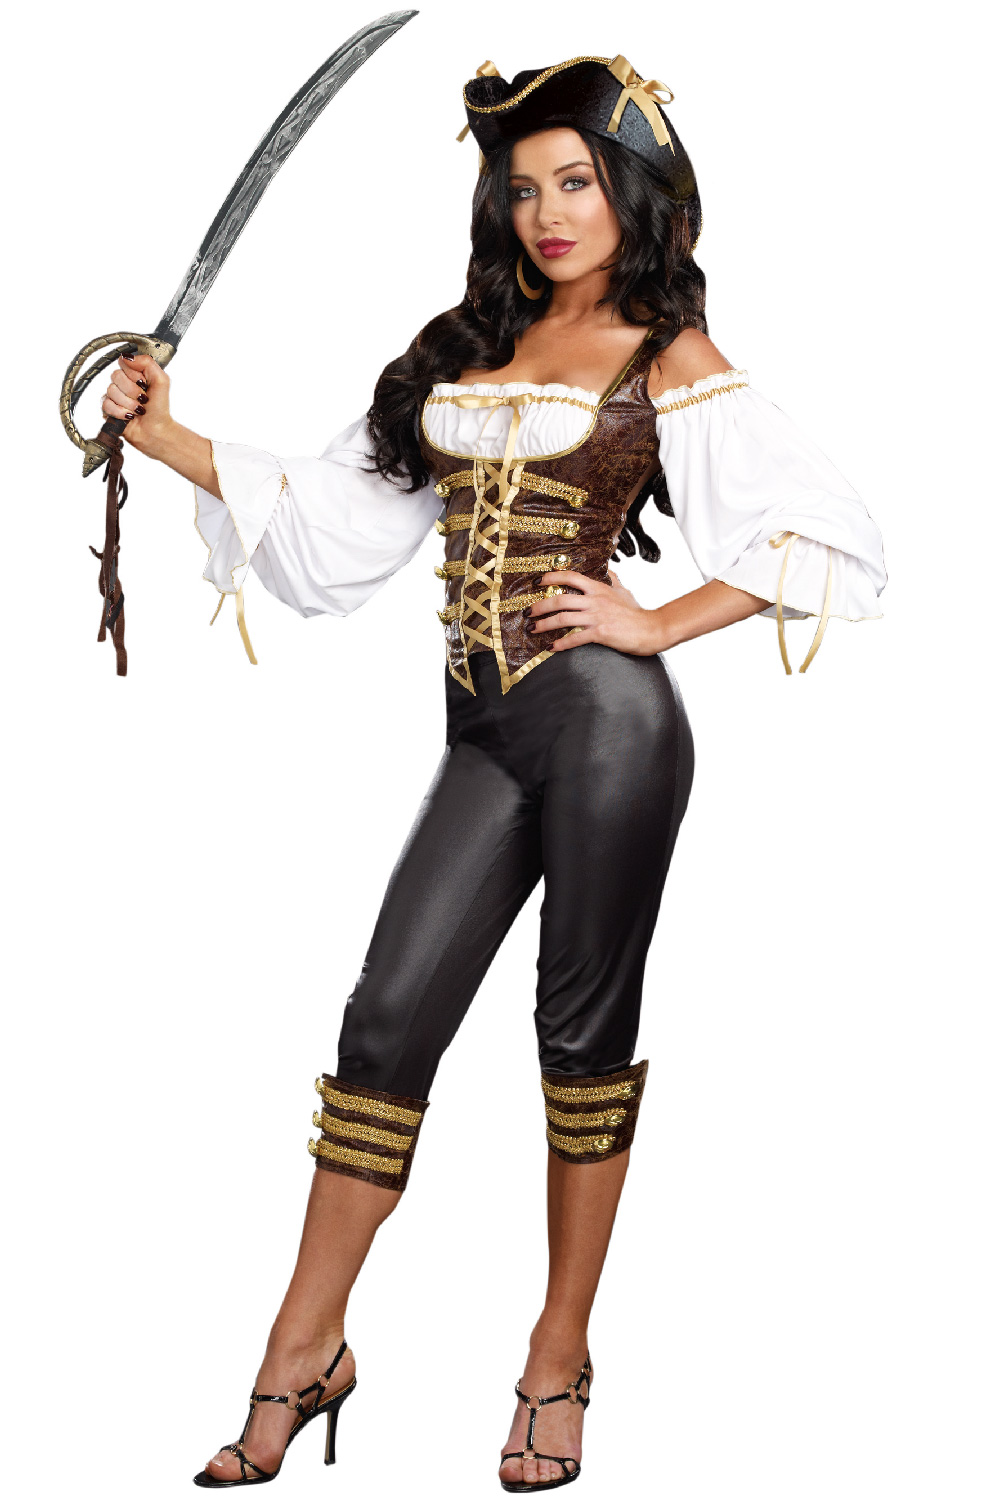 sc 1 st  Walmart & Seaworthy Pirate Costume Dreamgirl 9871 Brown/Black - Walmart.com